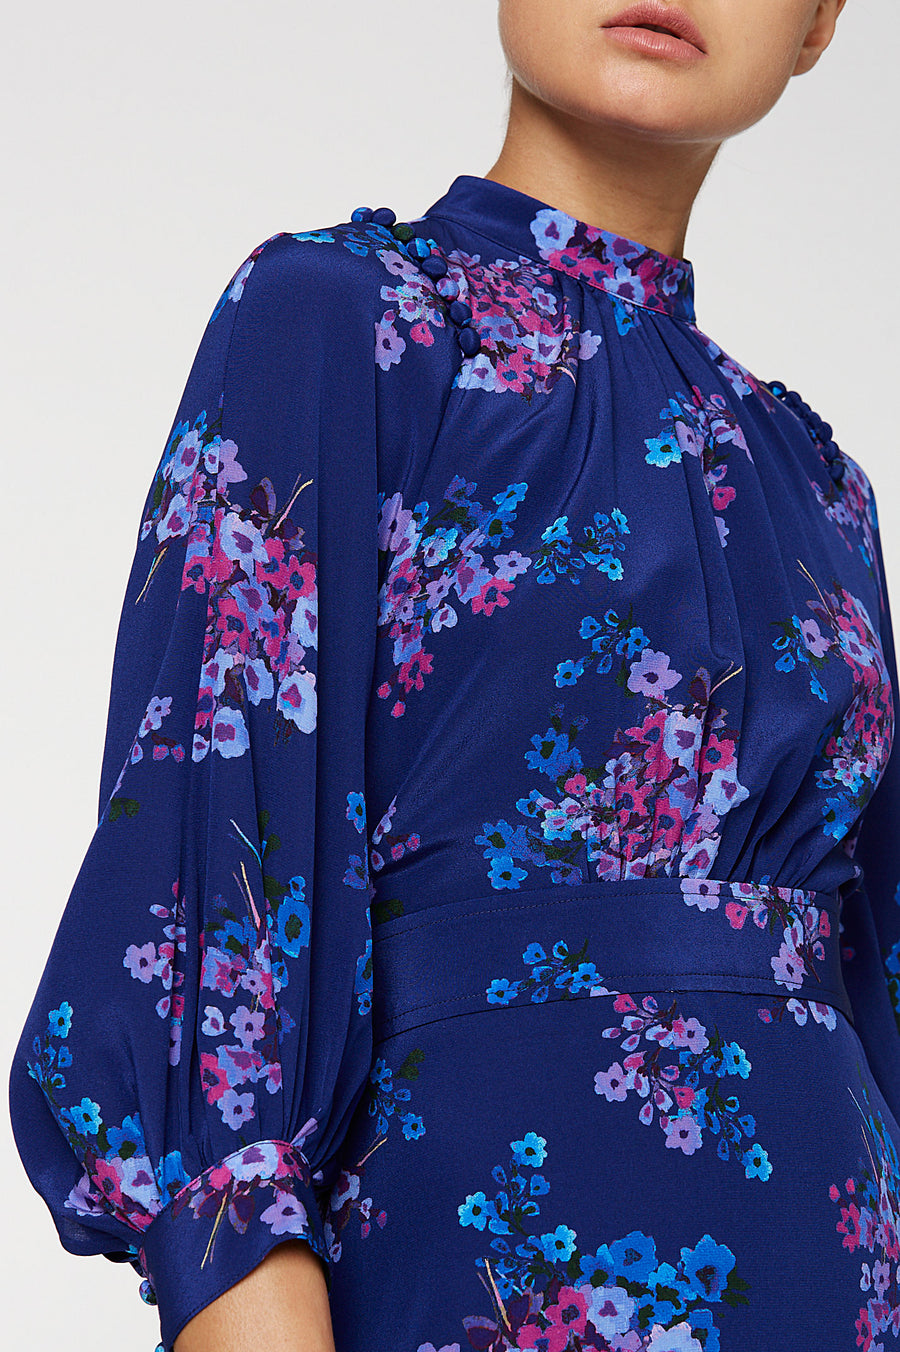 CDC Printed Button Shoulder Dress, high neck, detailed shoulders, cinches in the waist, 100% Silk, Color Blue